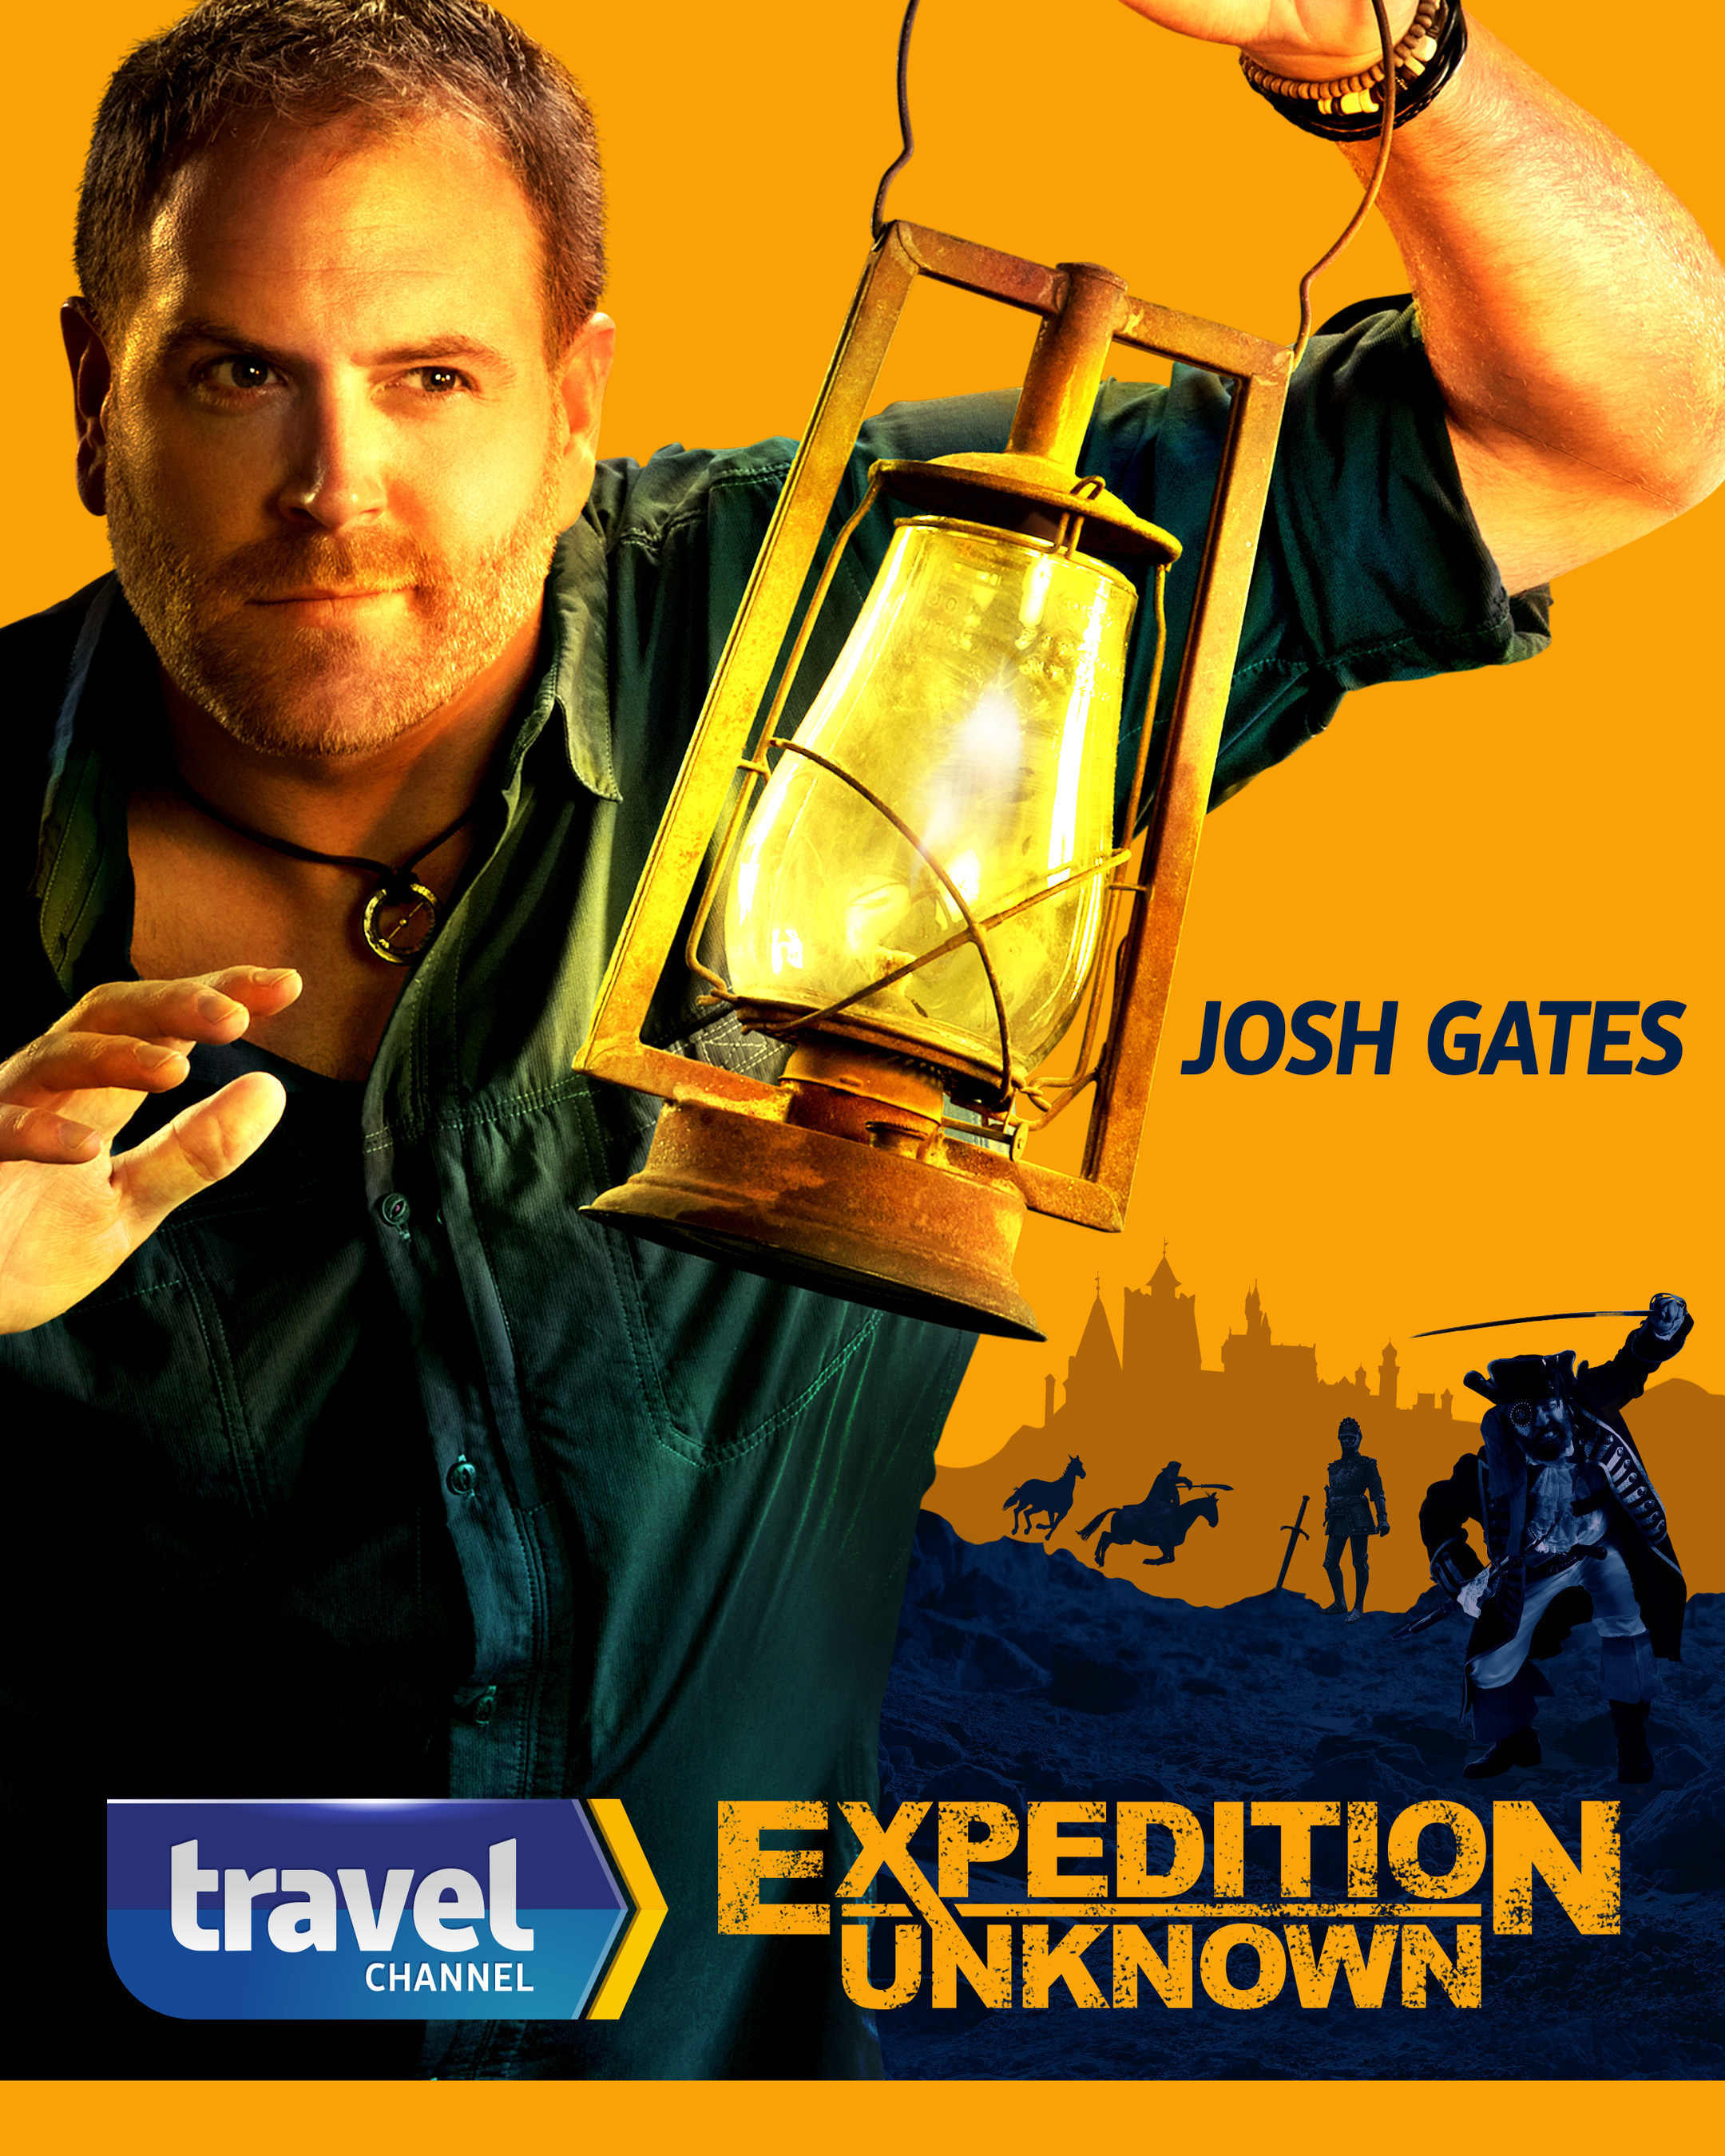 Explorer Josh Gates Sets Out On All-New Thrilling Adventures Investigating The World's Most Intriguing Legends - The Search For The Real Robin Hood, Blackbeard's Hidden